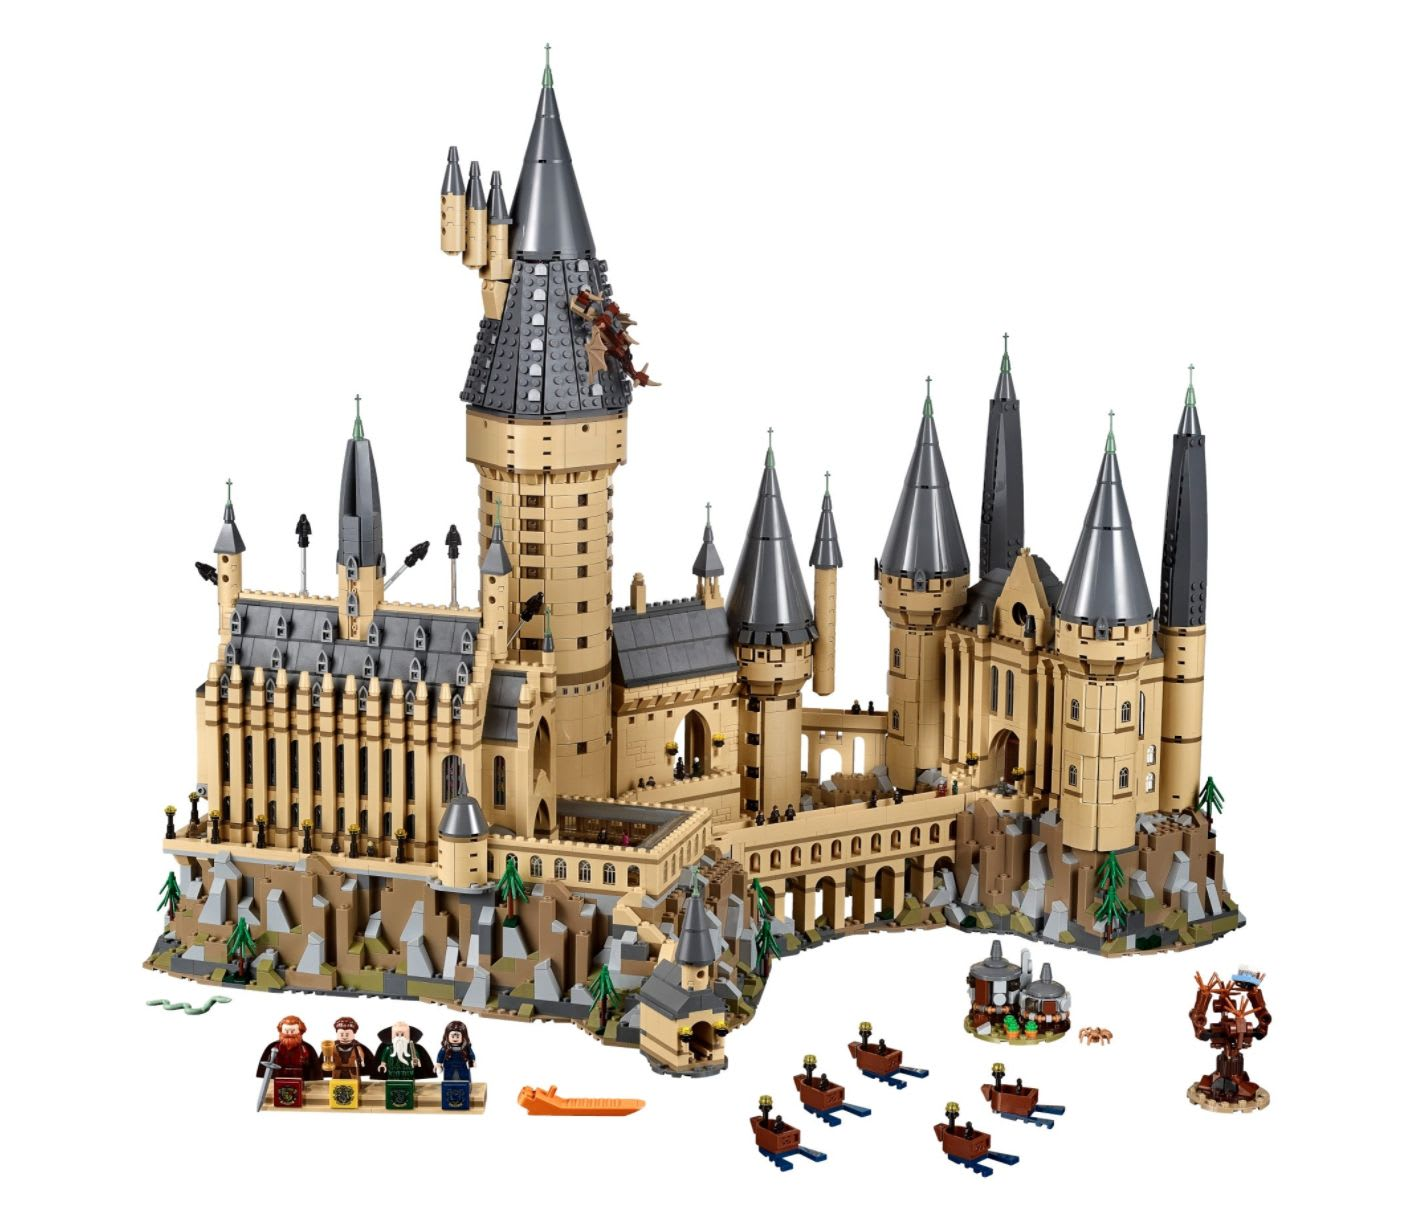 Discover the LEGO Harry Potter Hogwarts Castle set available at LEGO.